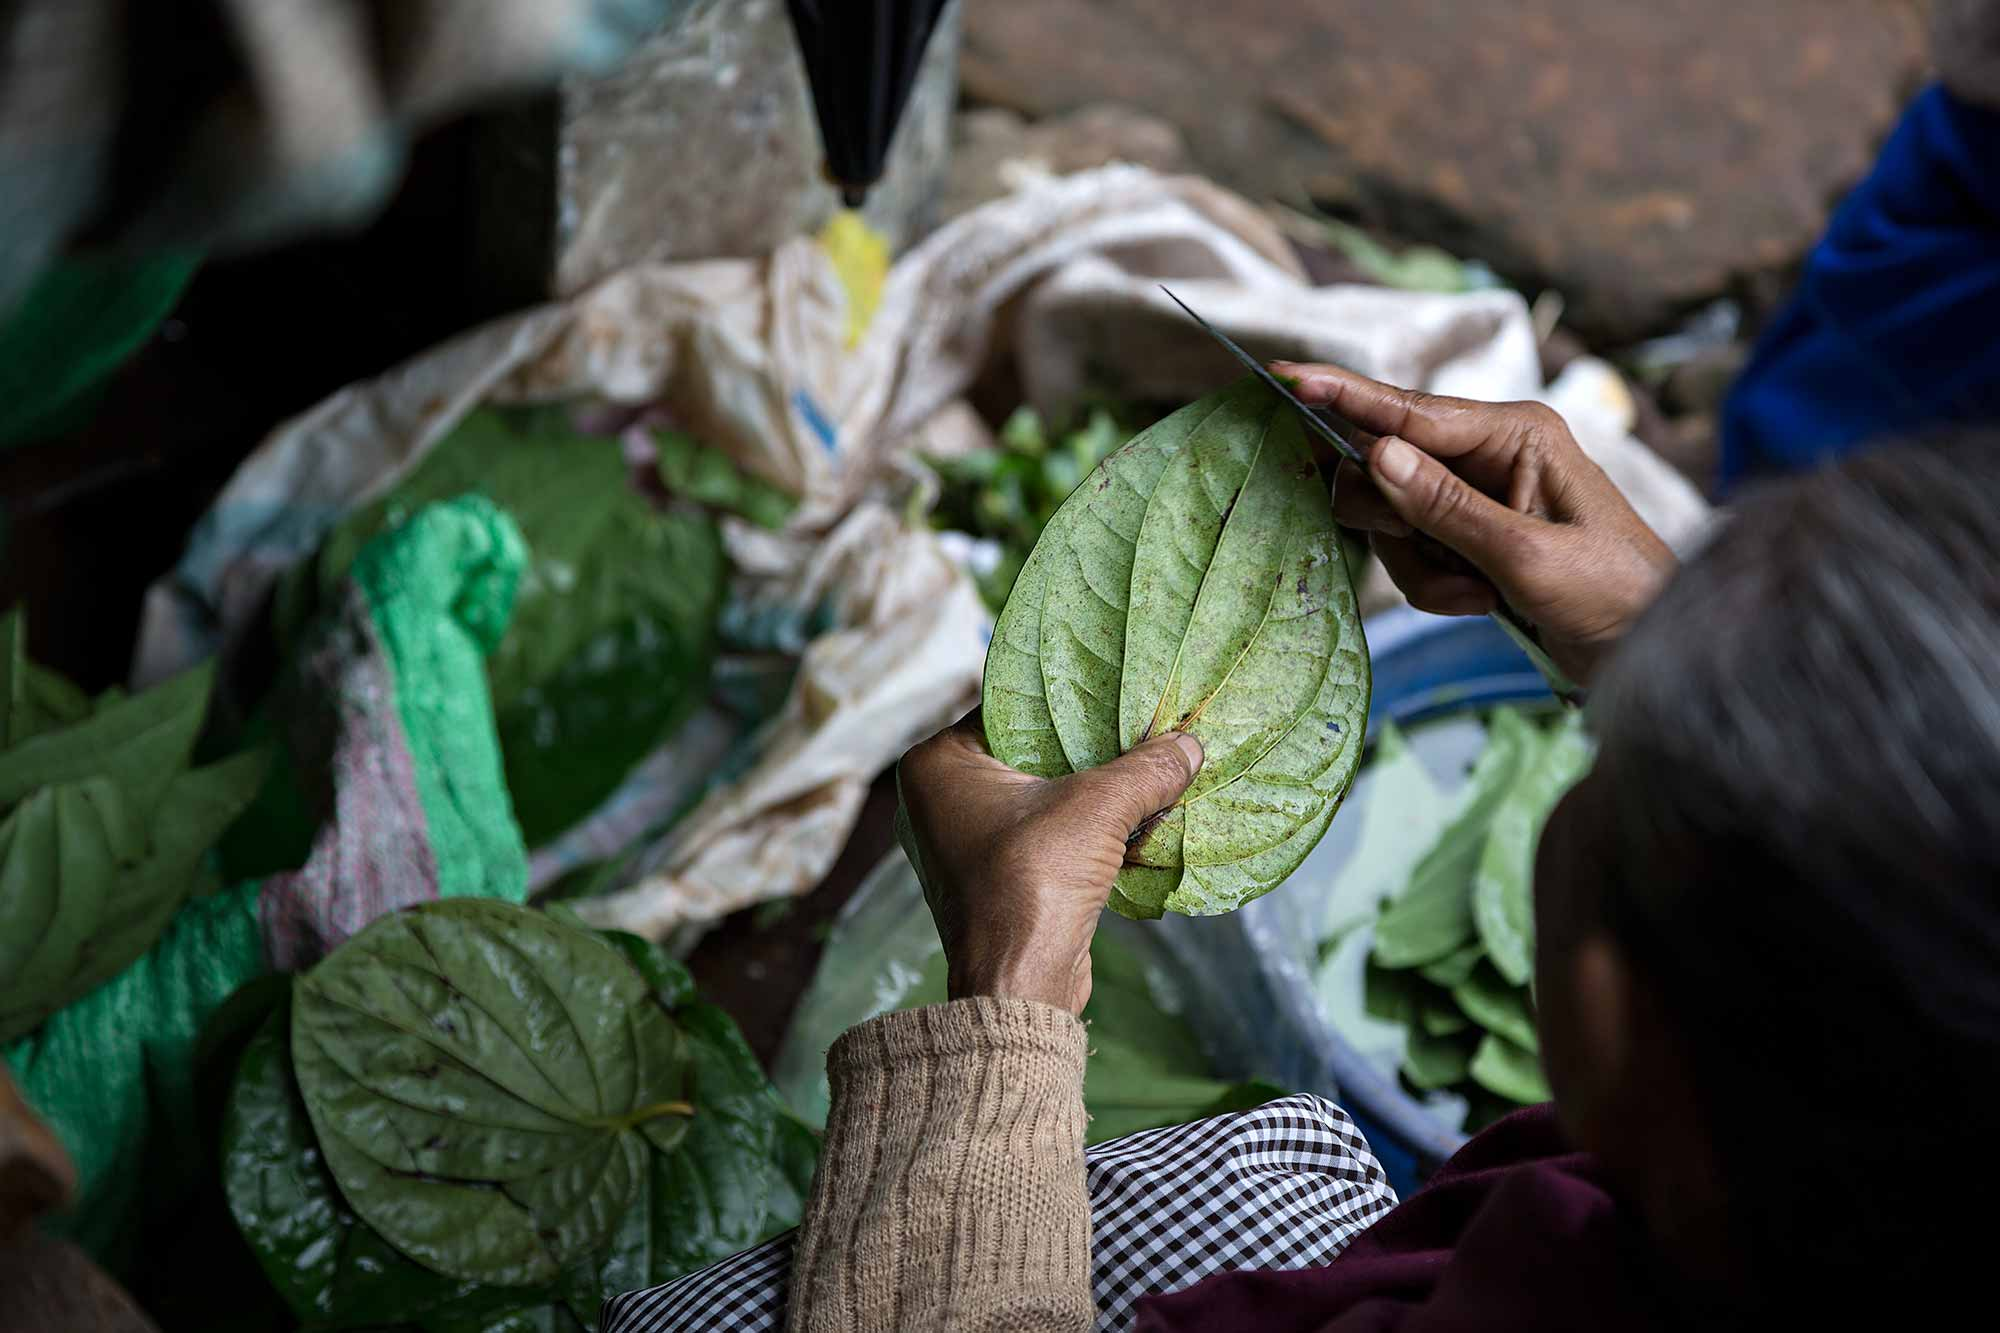 Woman cutting betel leaves at a market in Guwahati, India. © Ulli Maier & Nisa Maier